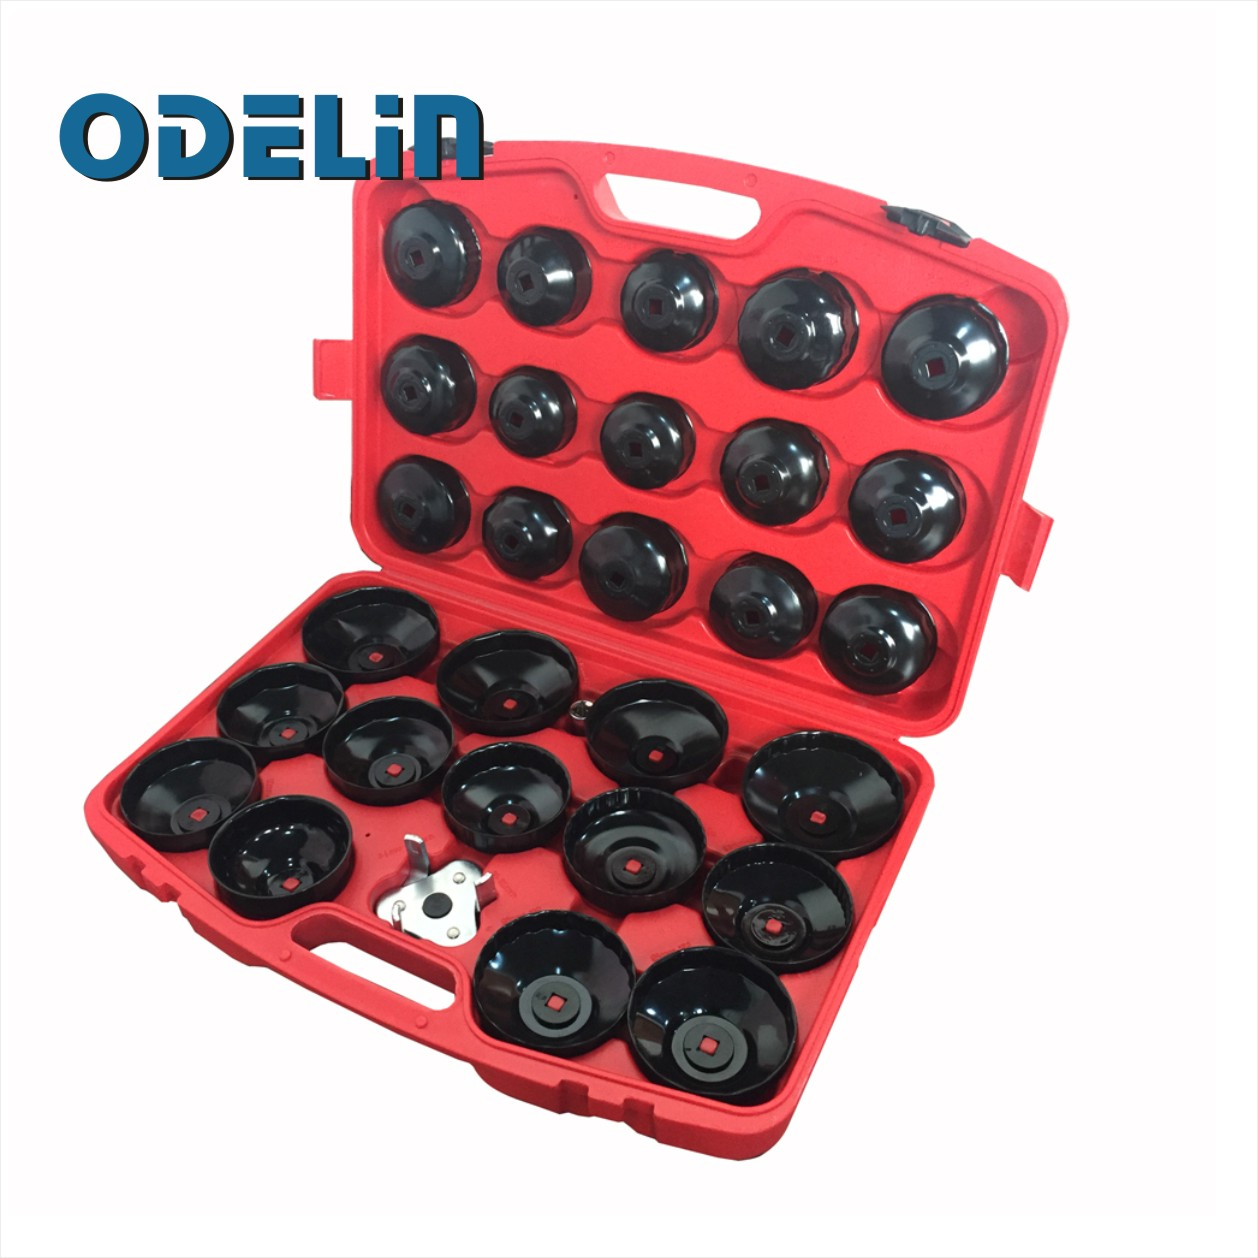 30pc Oil Filter Removal Wrench Cap Car Garage Tool Set Loosen Tighten Cup Socket